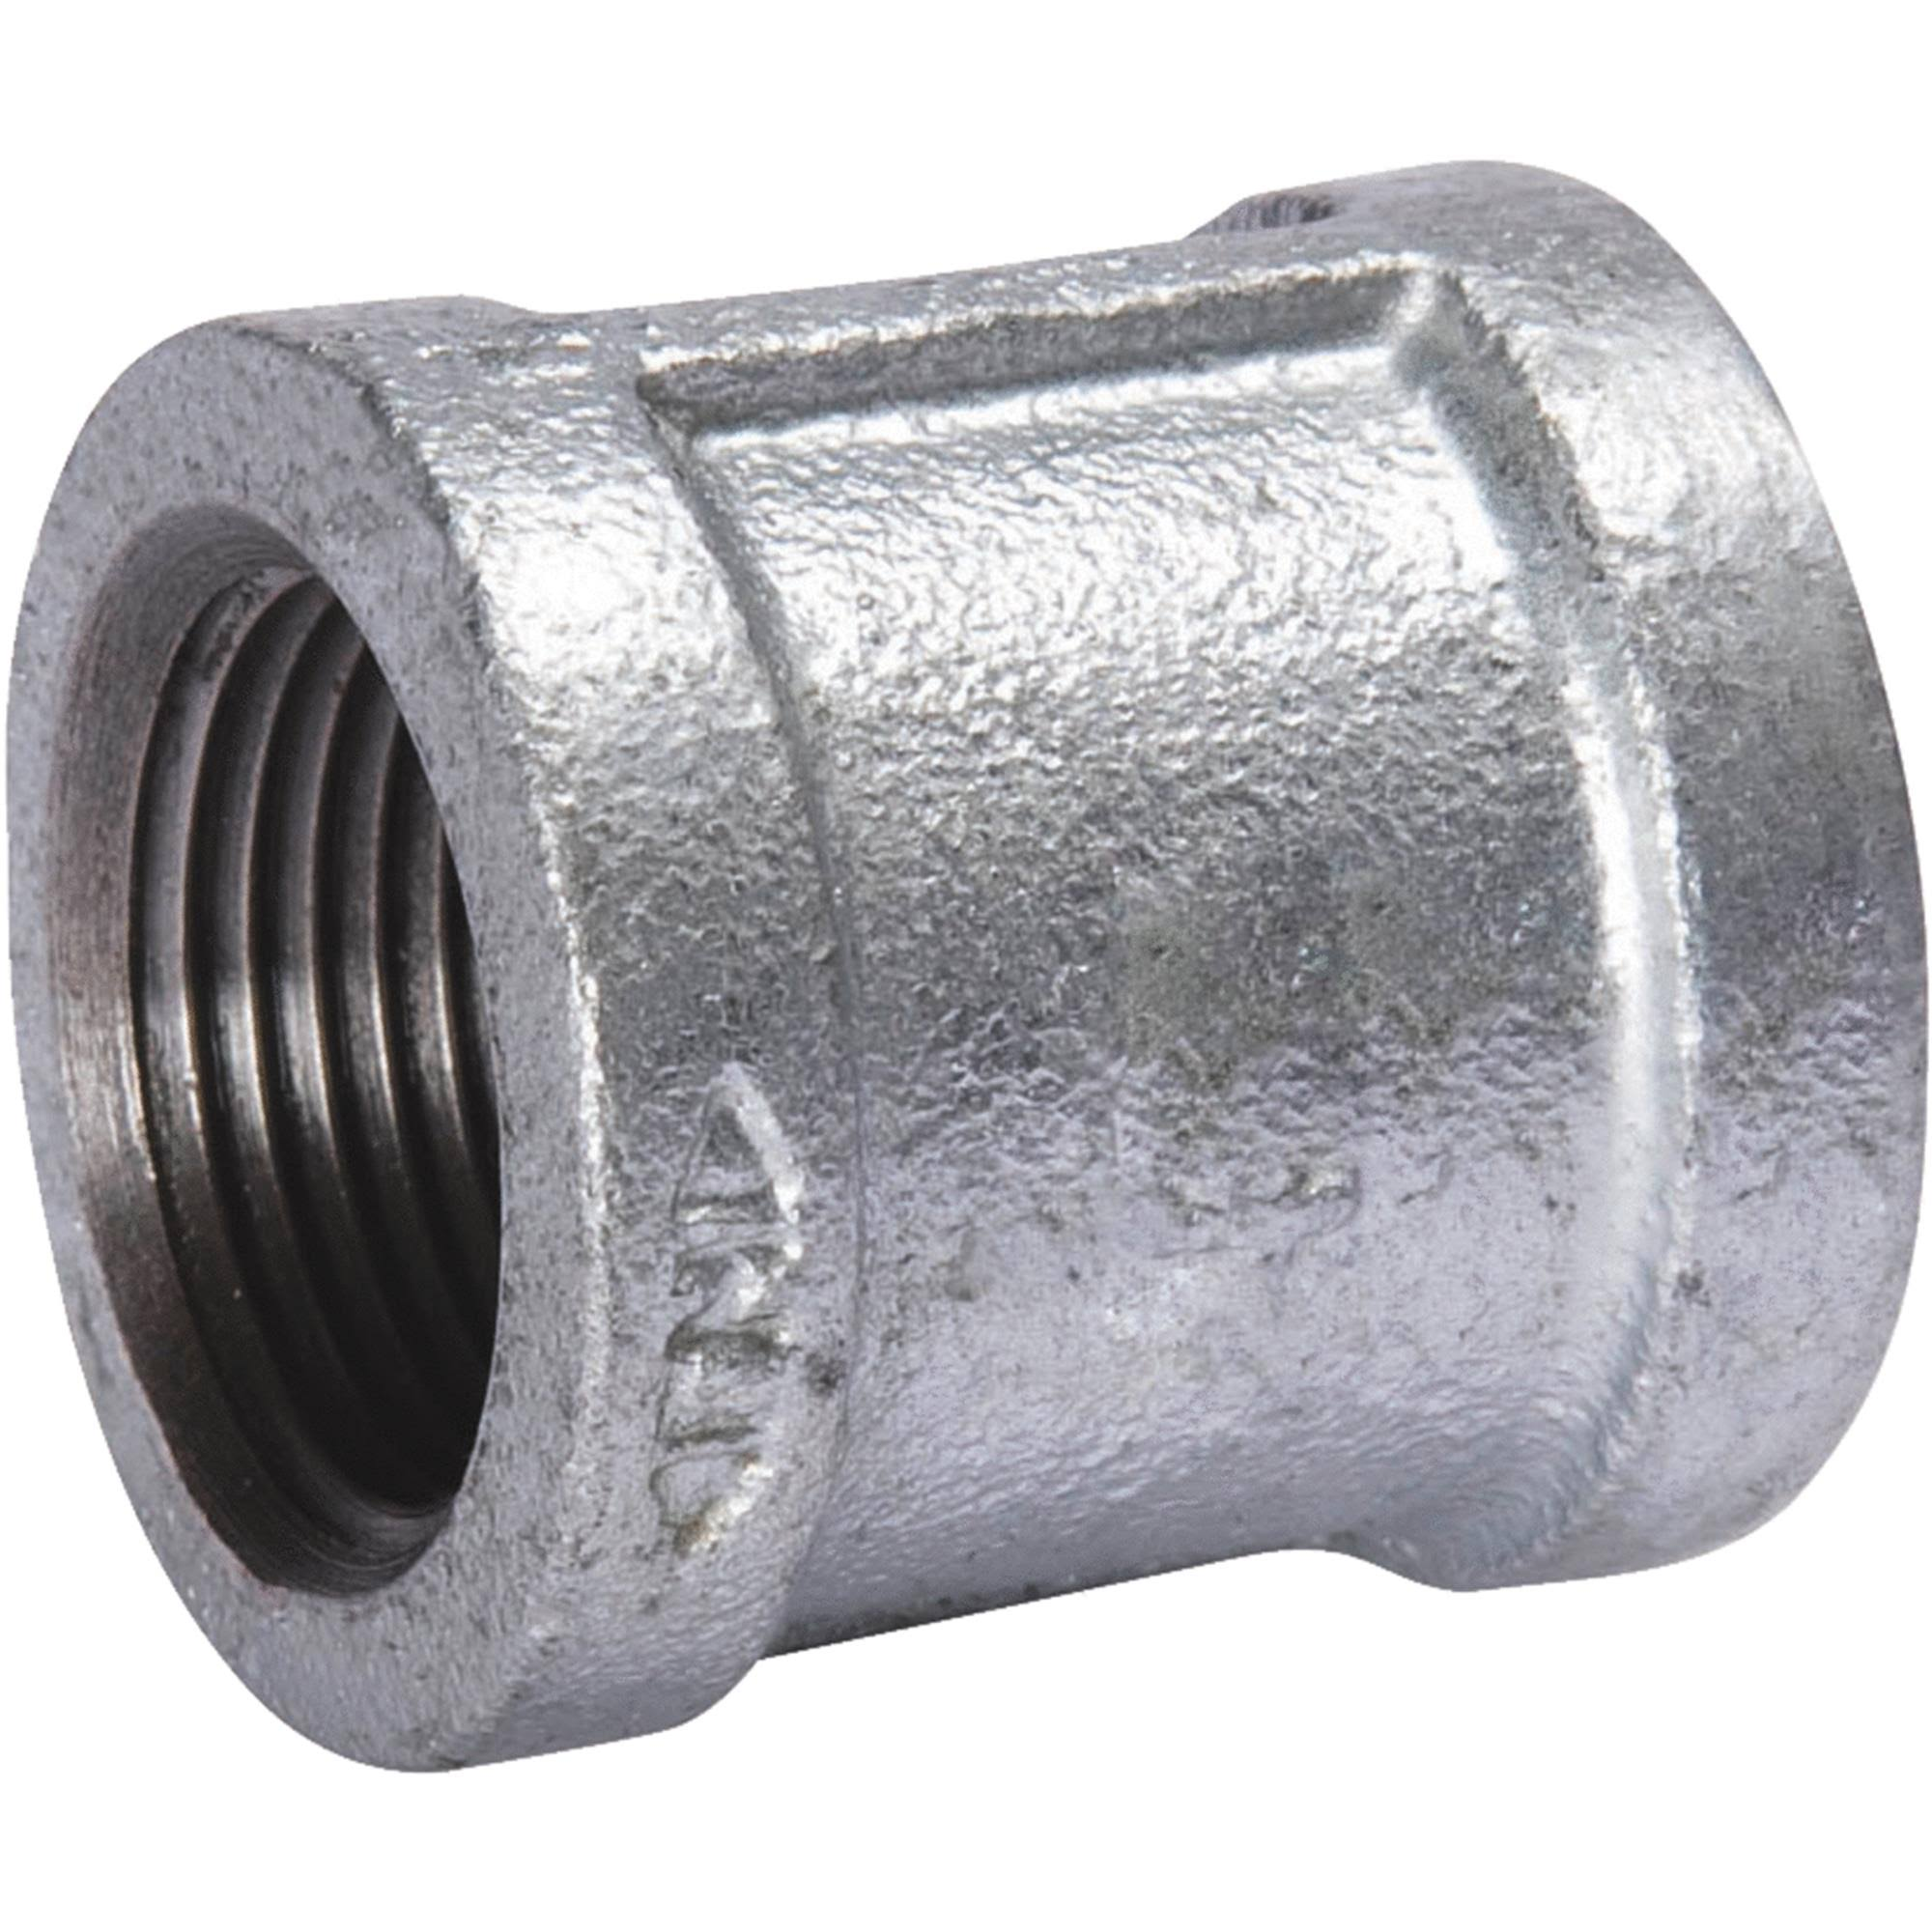 "B and K Malleable Galvanized Iron Coupling - 1"" Fip, 5 Pack"